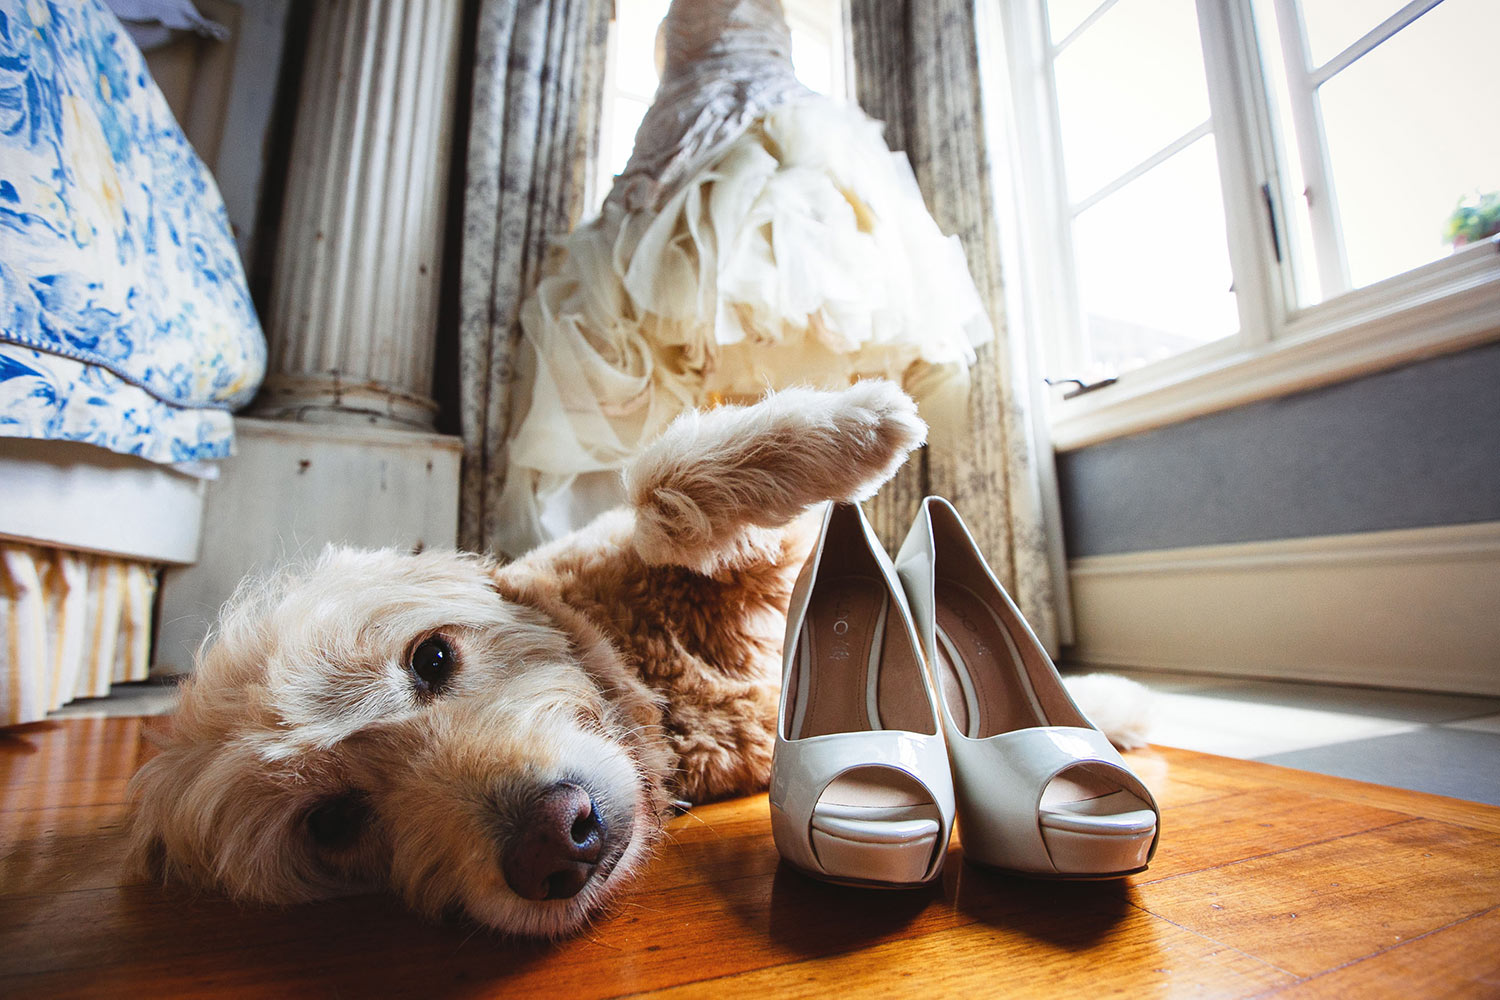 Sweet dog posing with heels and ruffled gown in the background by Callaway Gable